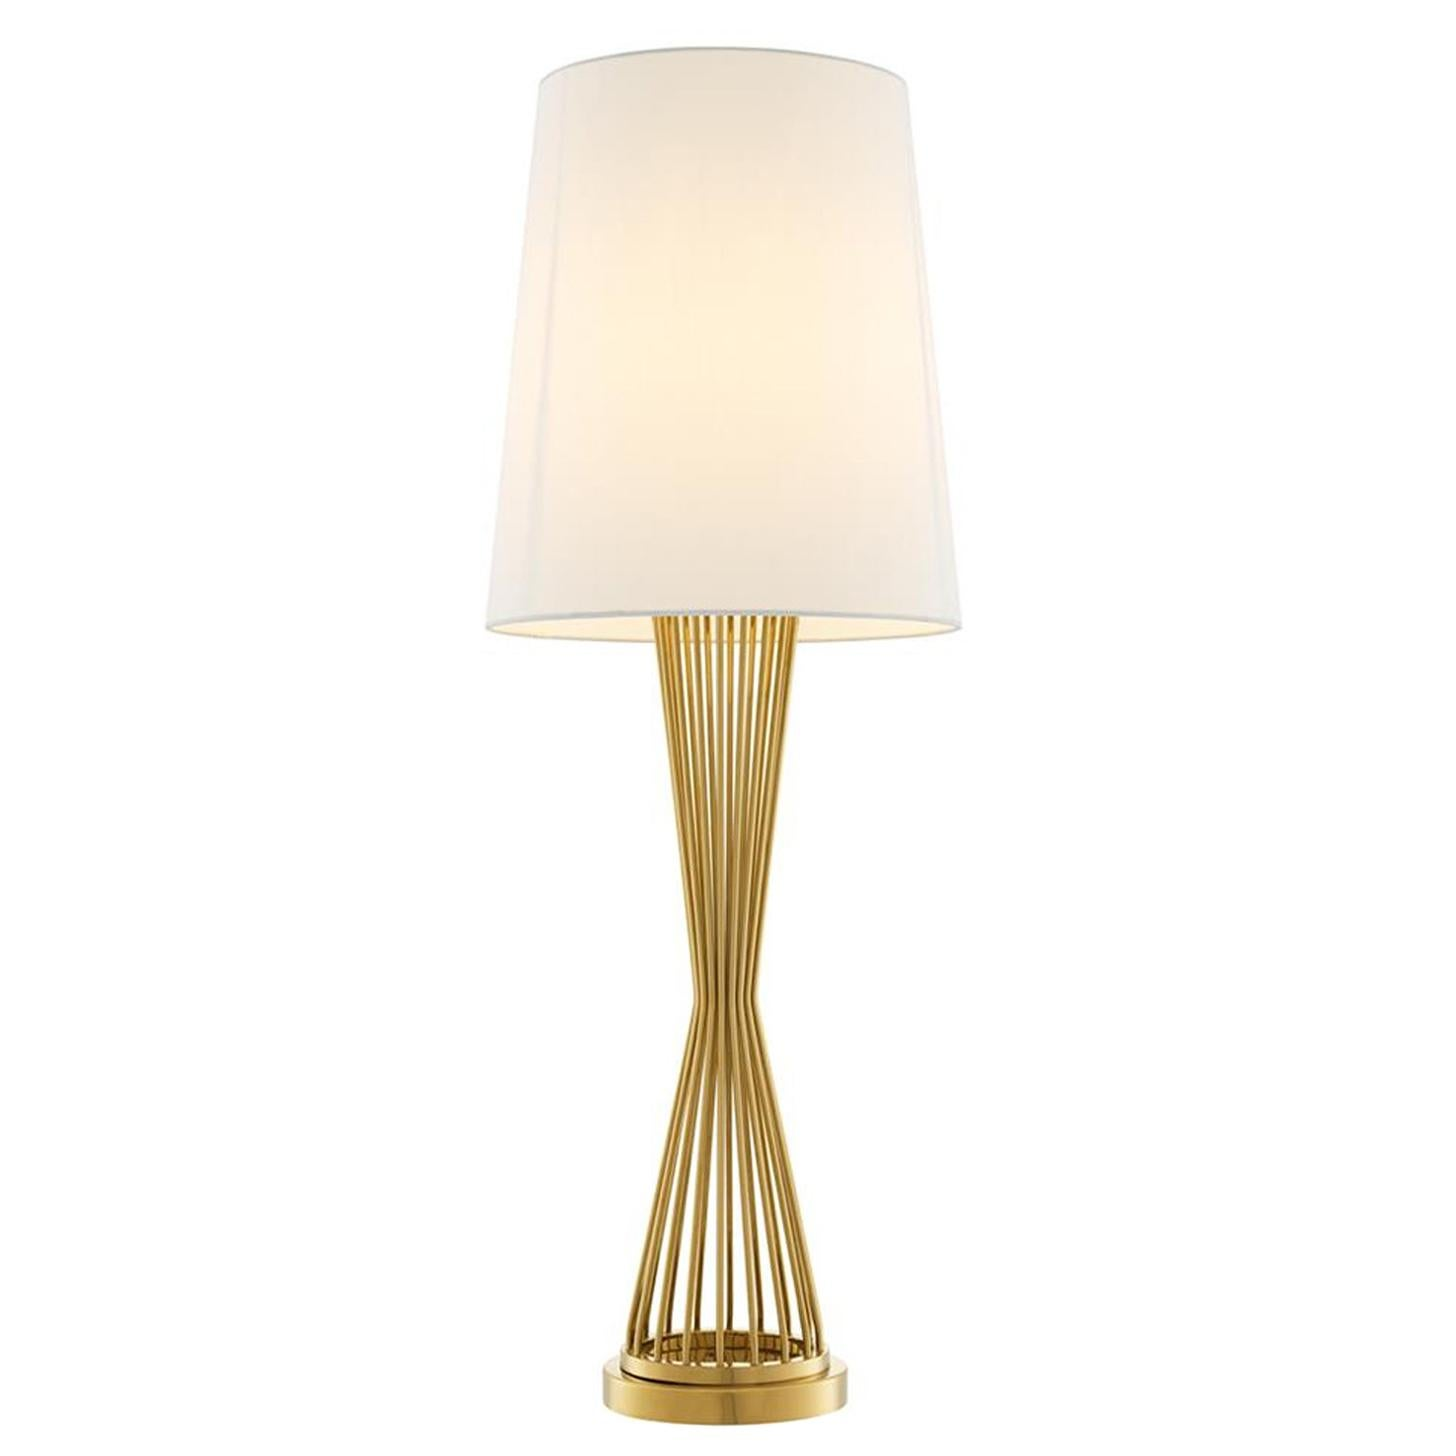 Barnet Table Lamp in Gold or Nickel Finish